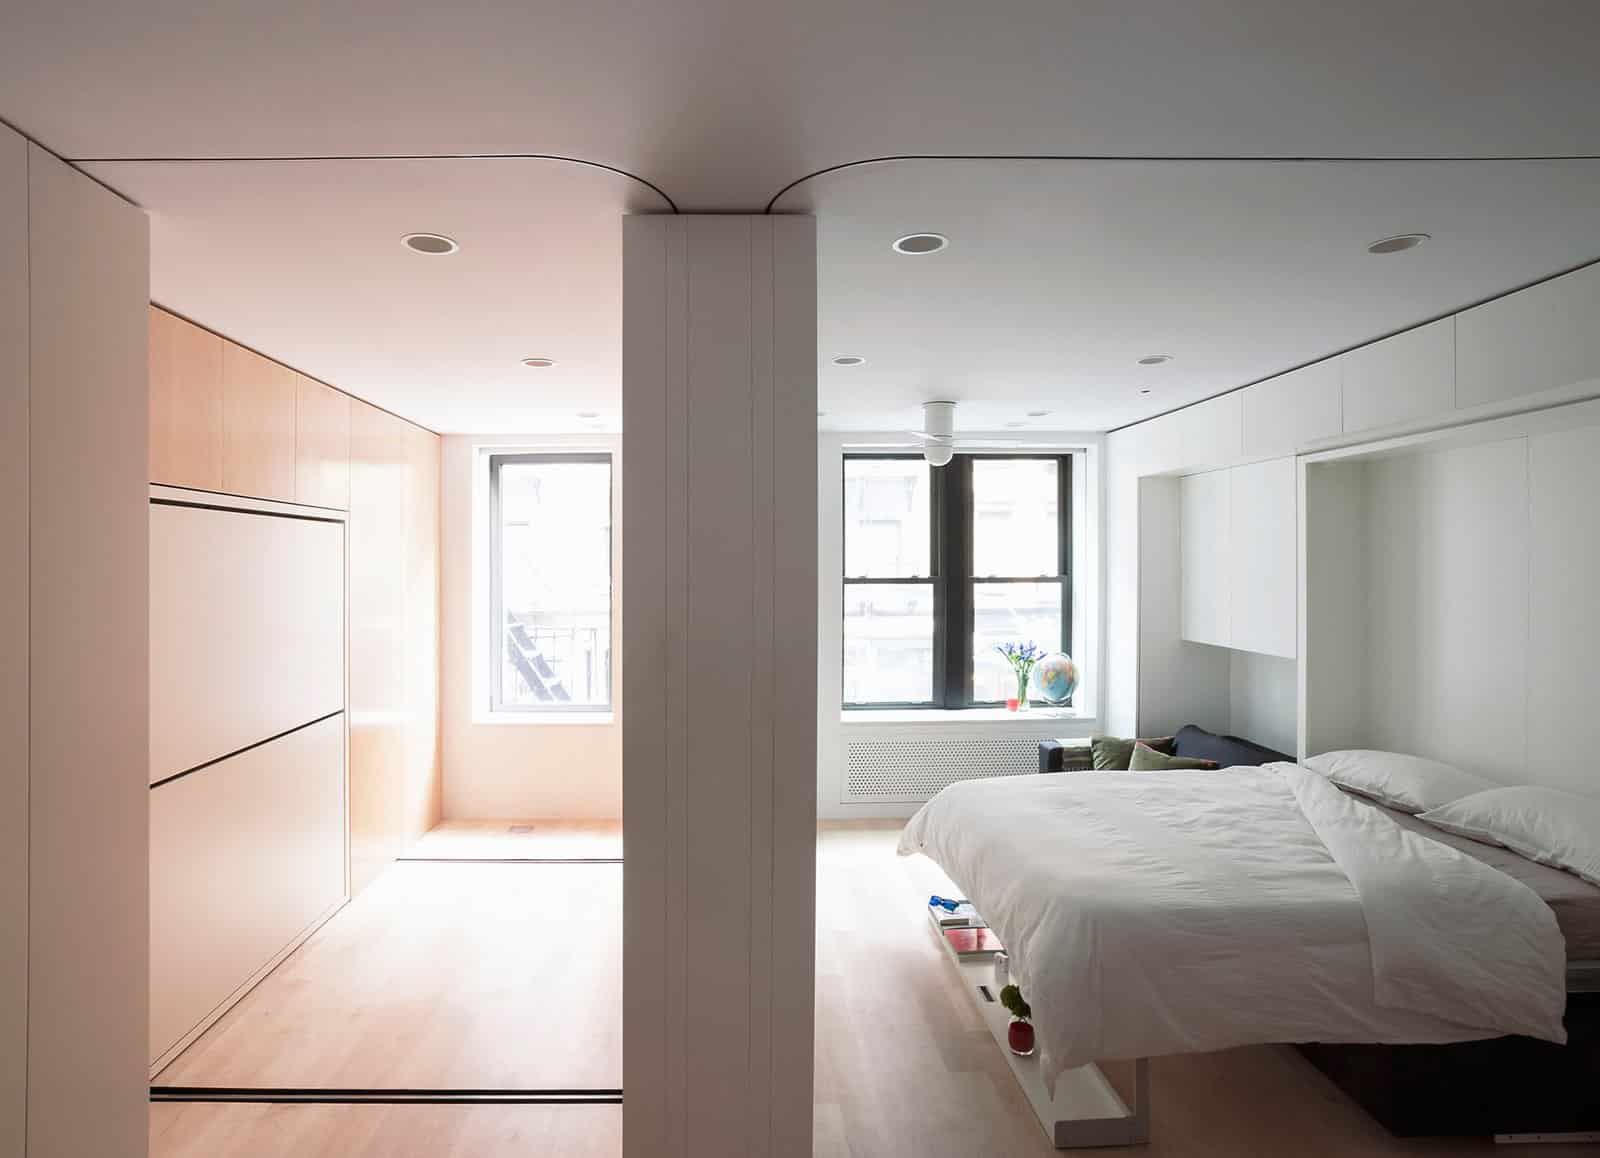 The moving wall opens up a second room which features bike storage a second office space and can be converted to the guest bedroom1